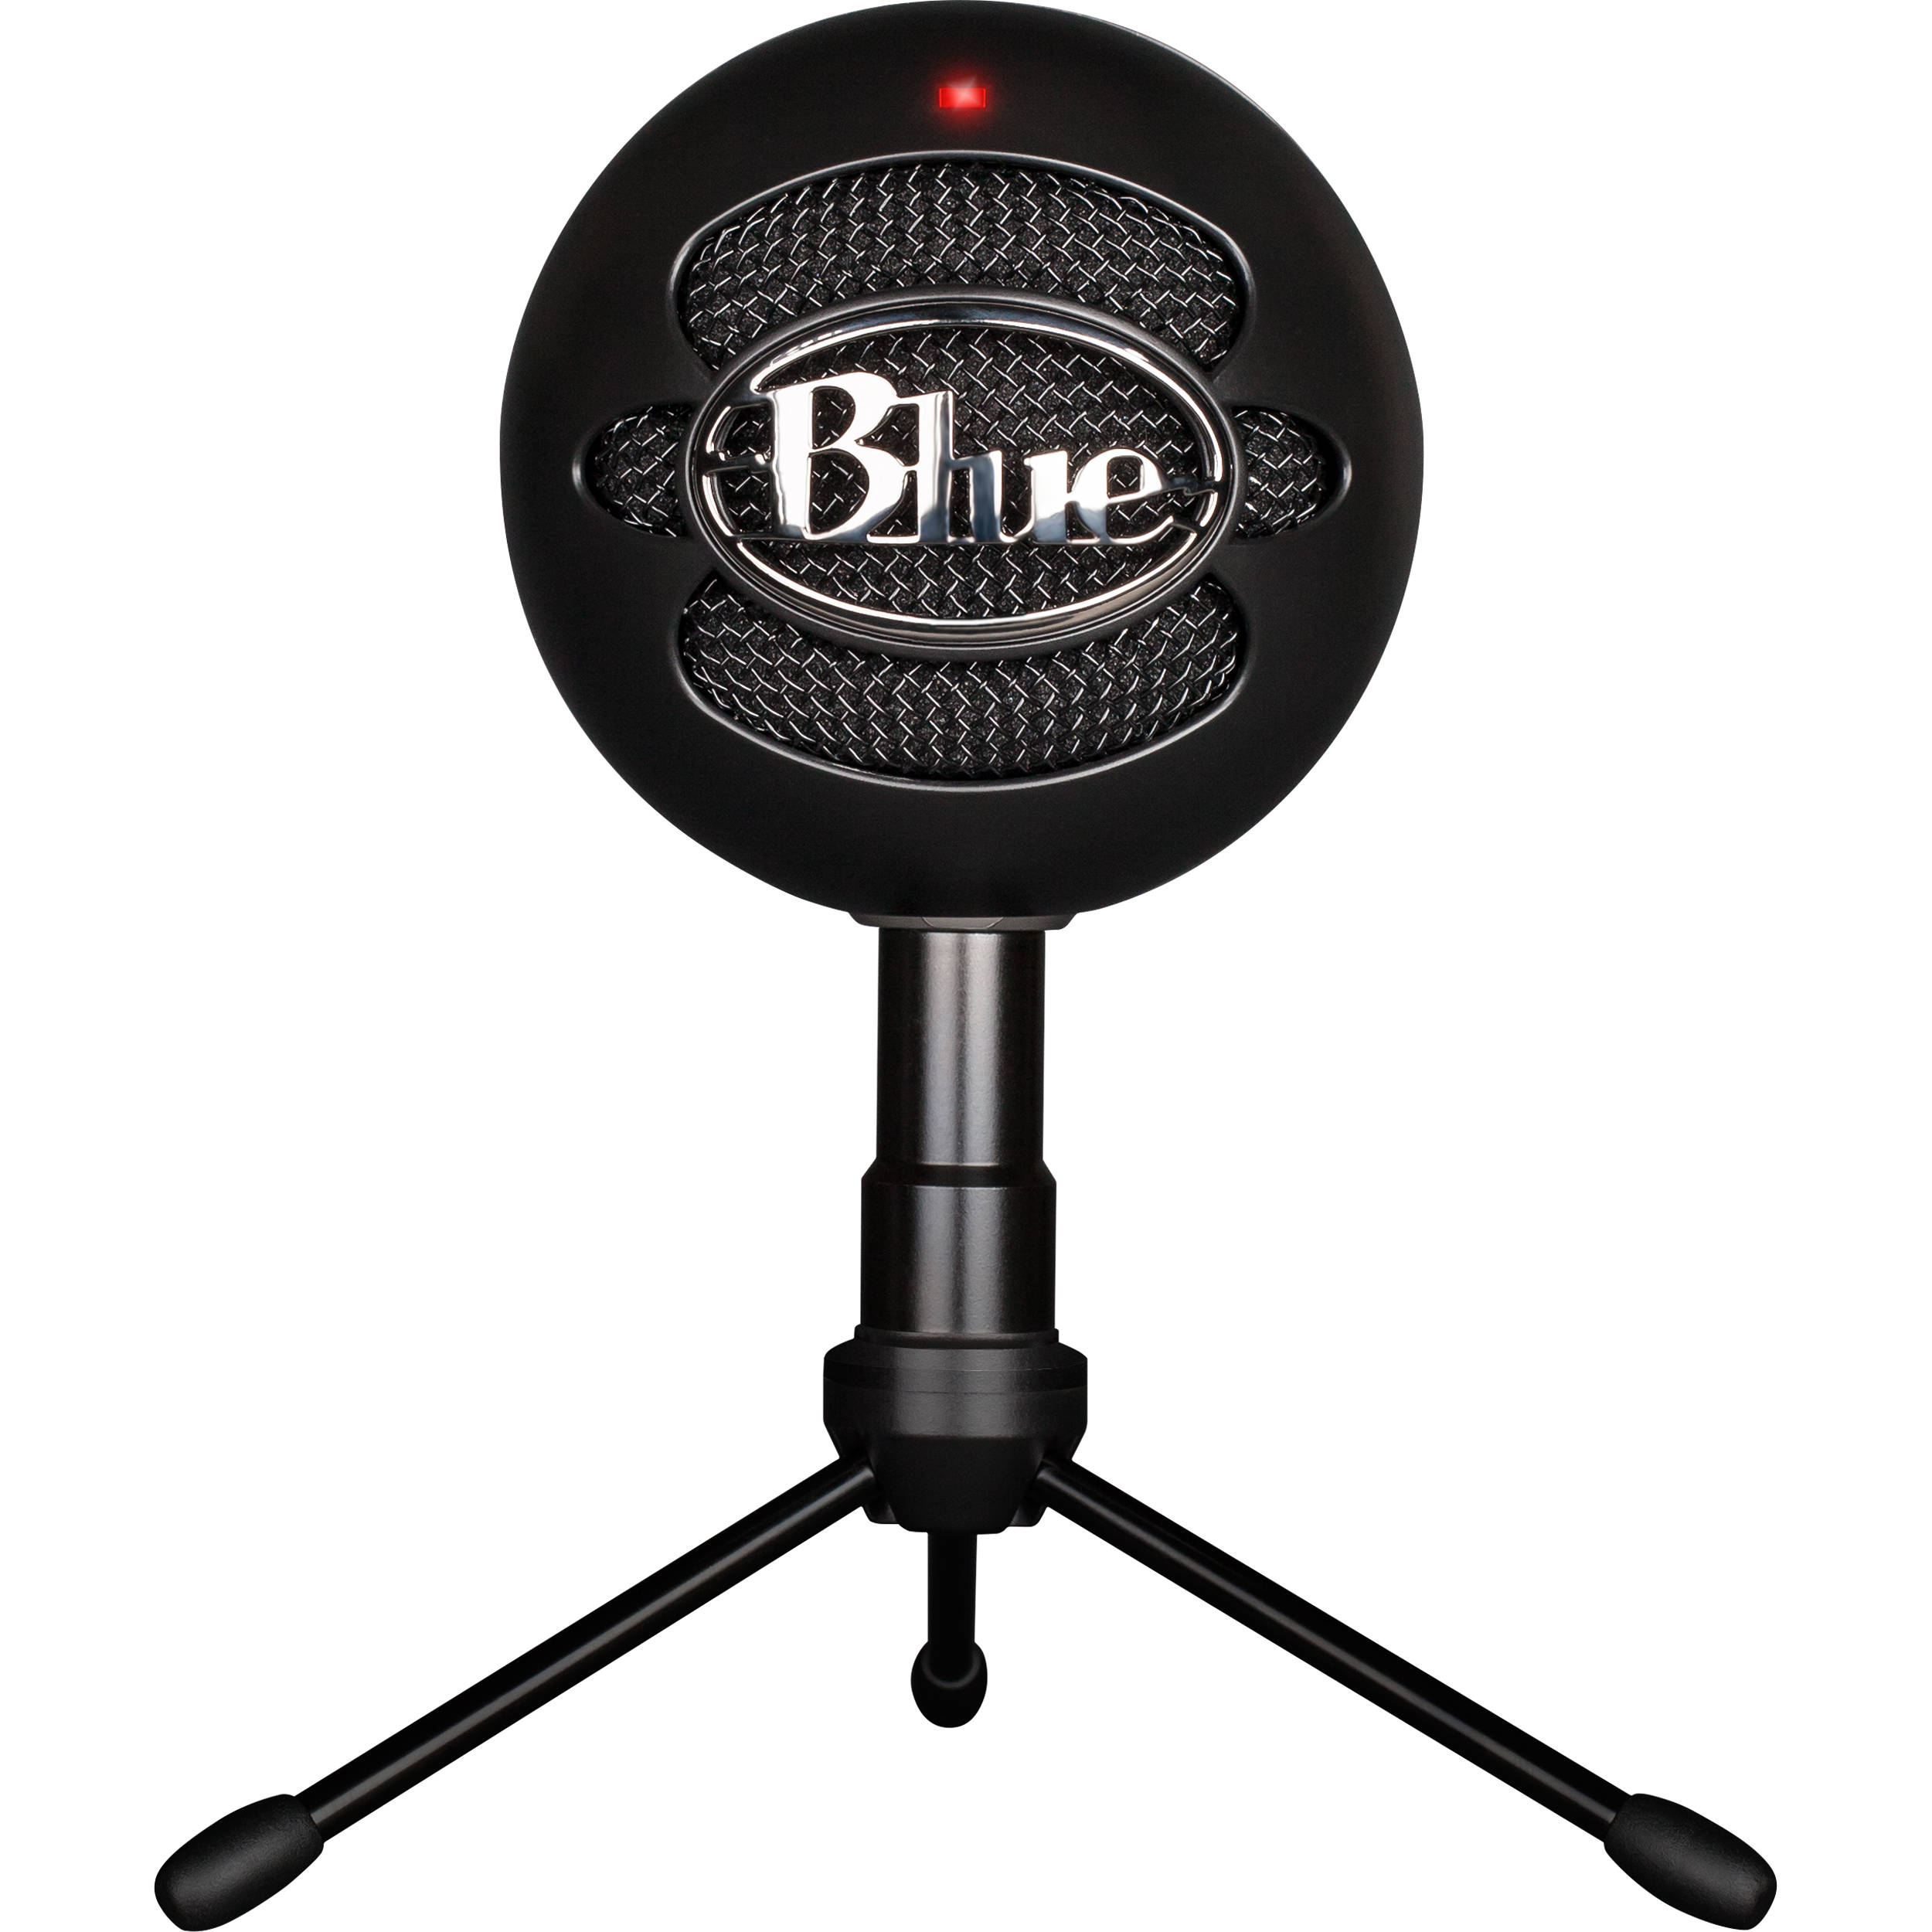 Blue Snowball iCE USB Condenser Microphone 988-000067 B&H Photo